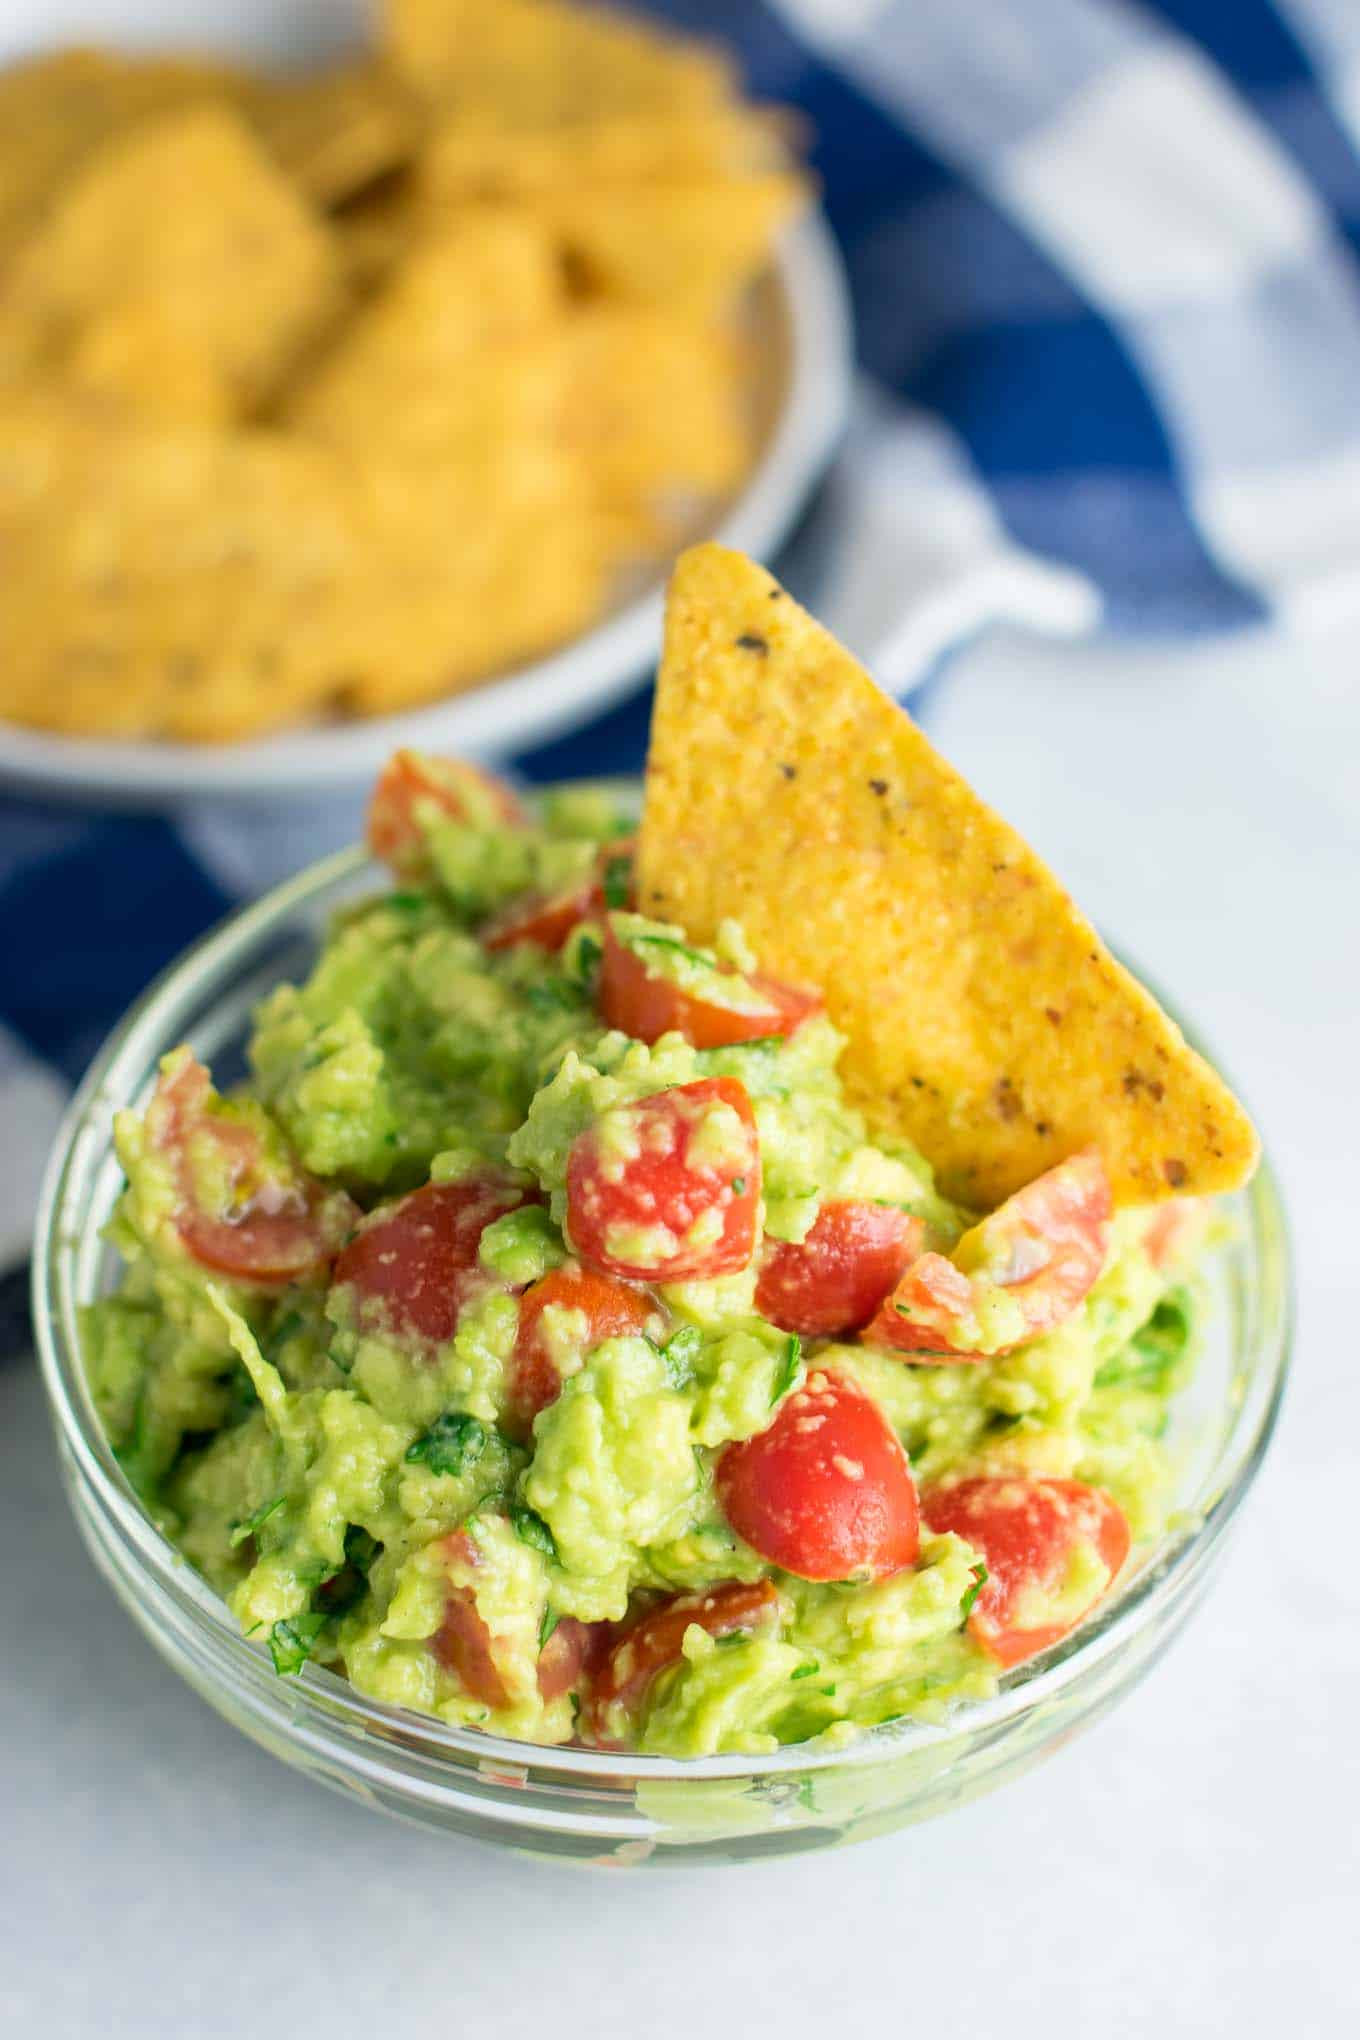 Healthy Guacamole Recipe  Best Guacamole Recipe easy and healthy Build Your Bite